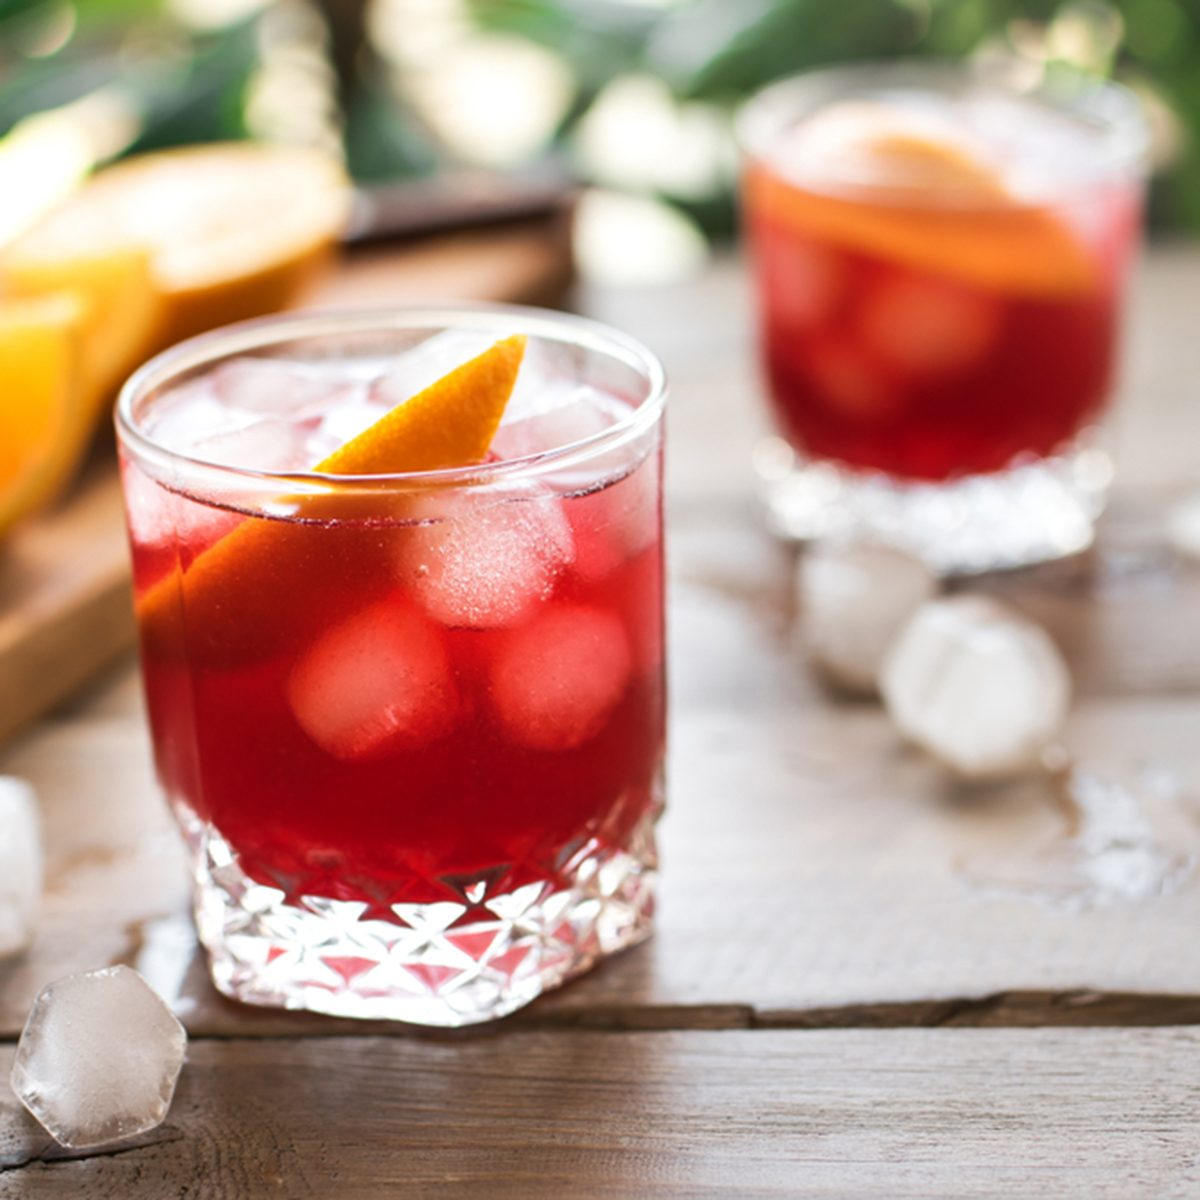 Watch How to Make a Scotch Negroni With Maraschino Cherry and Orange Peel video